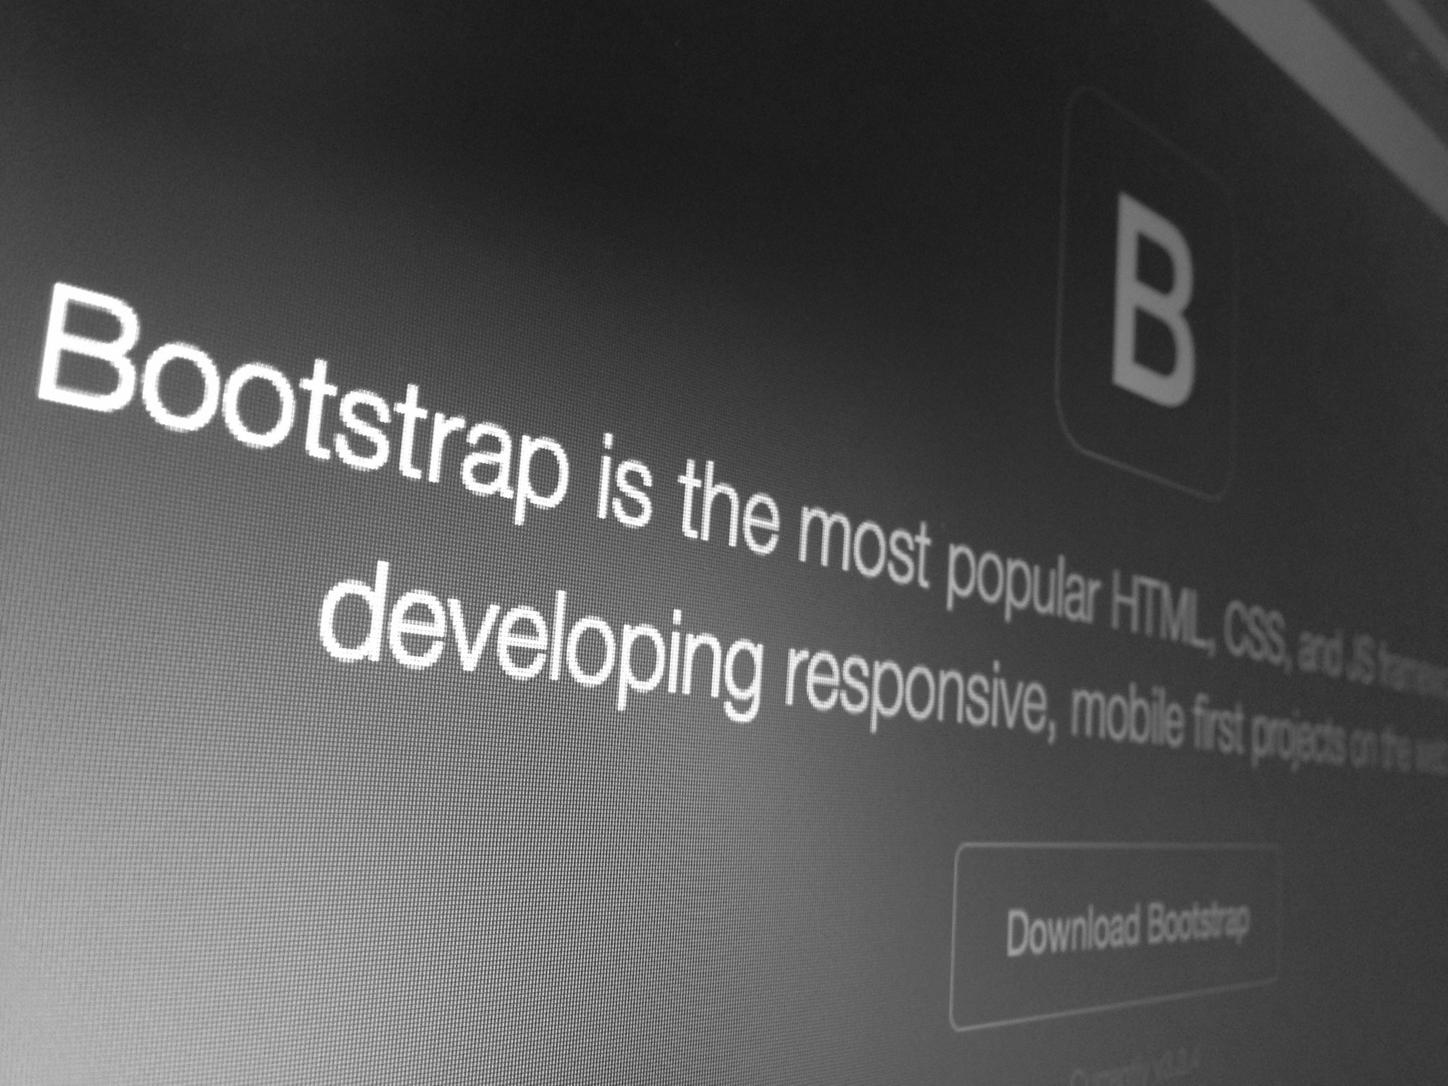 Let's talk about Bootstrap 4